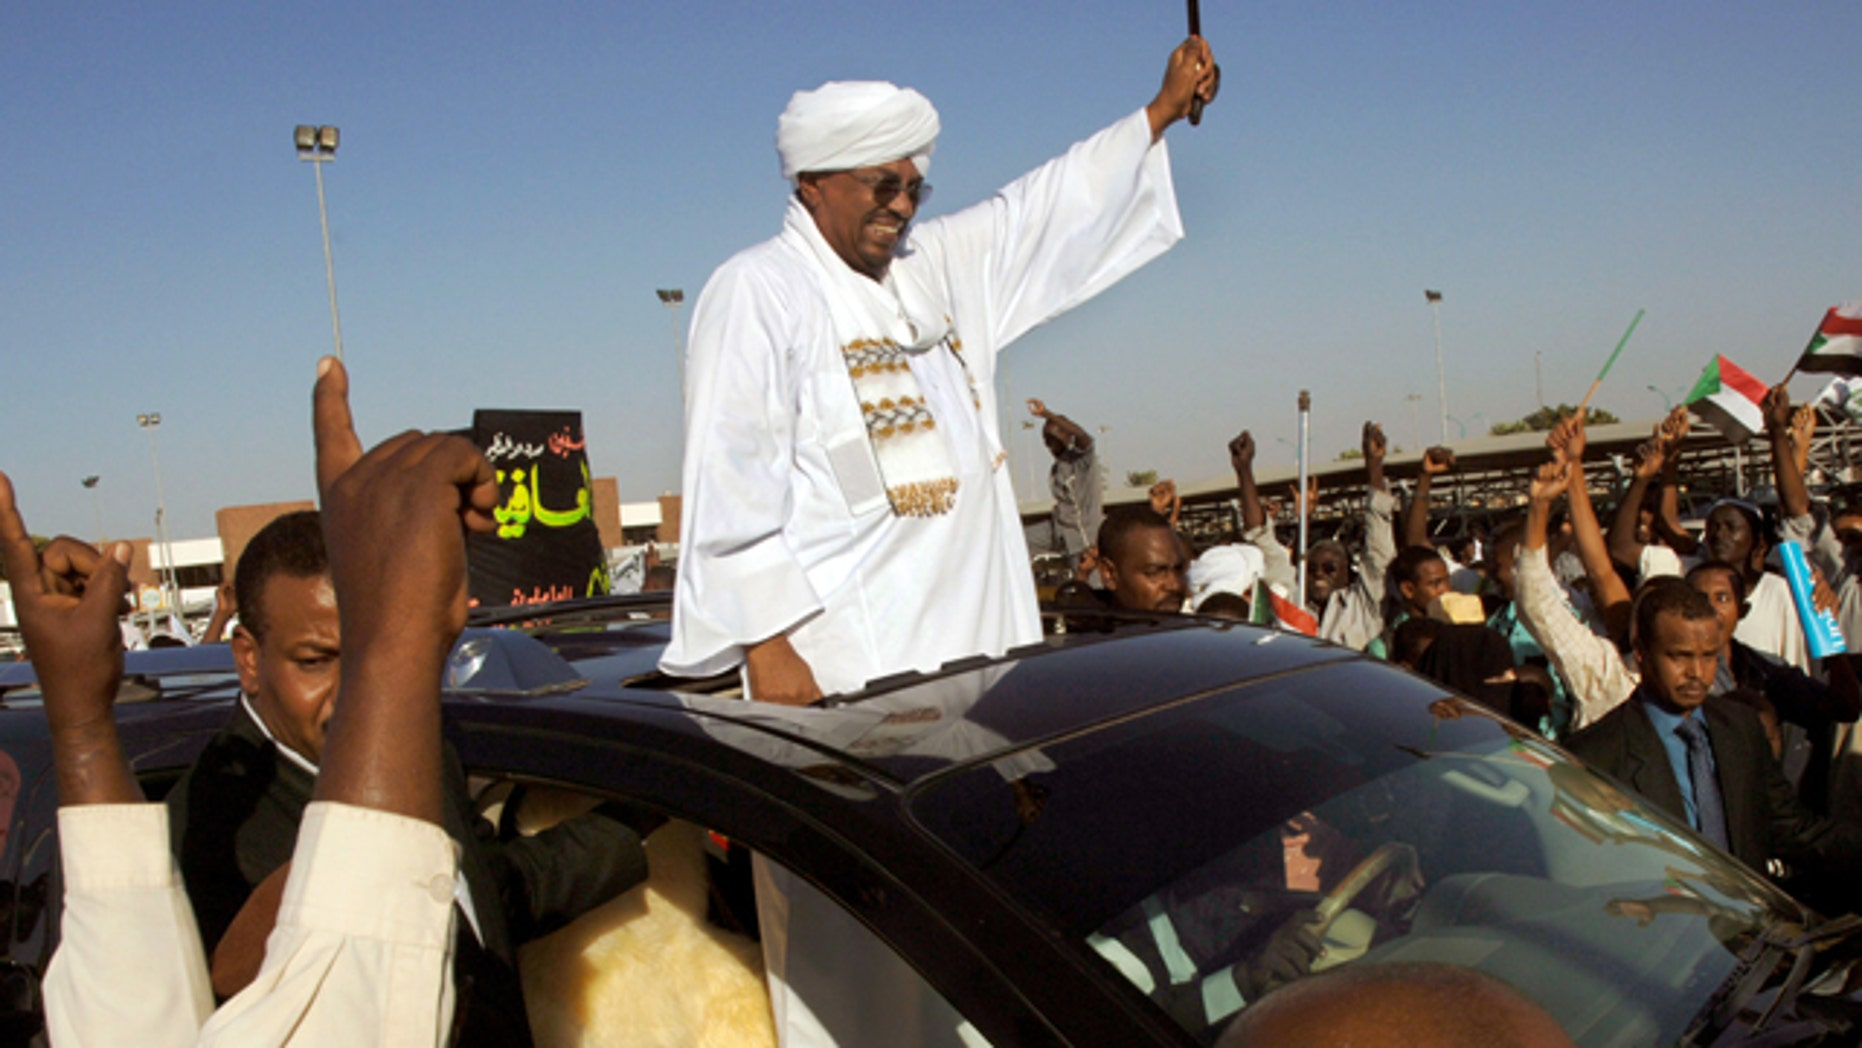 Nov. 14, 2012: Sudanese President Omar al-Bashir waves to people after his arrival at the Khartoum airport in Sudan.  Sudanese state television says al-Bashir has returned to the country after undergoing surgery in Saudi Arabia. (AP)